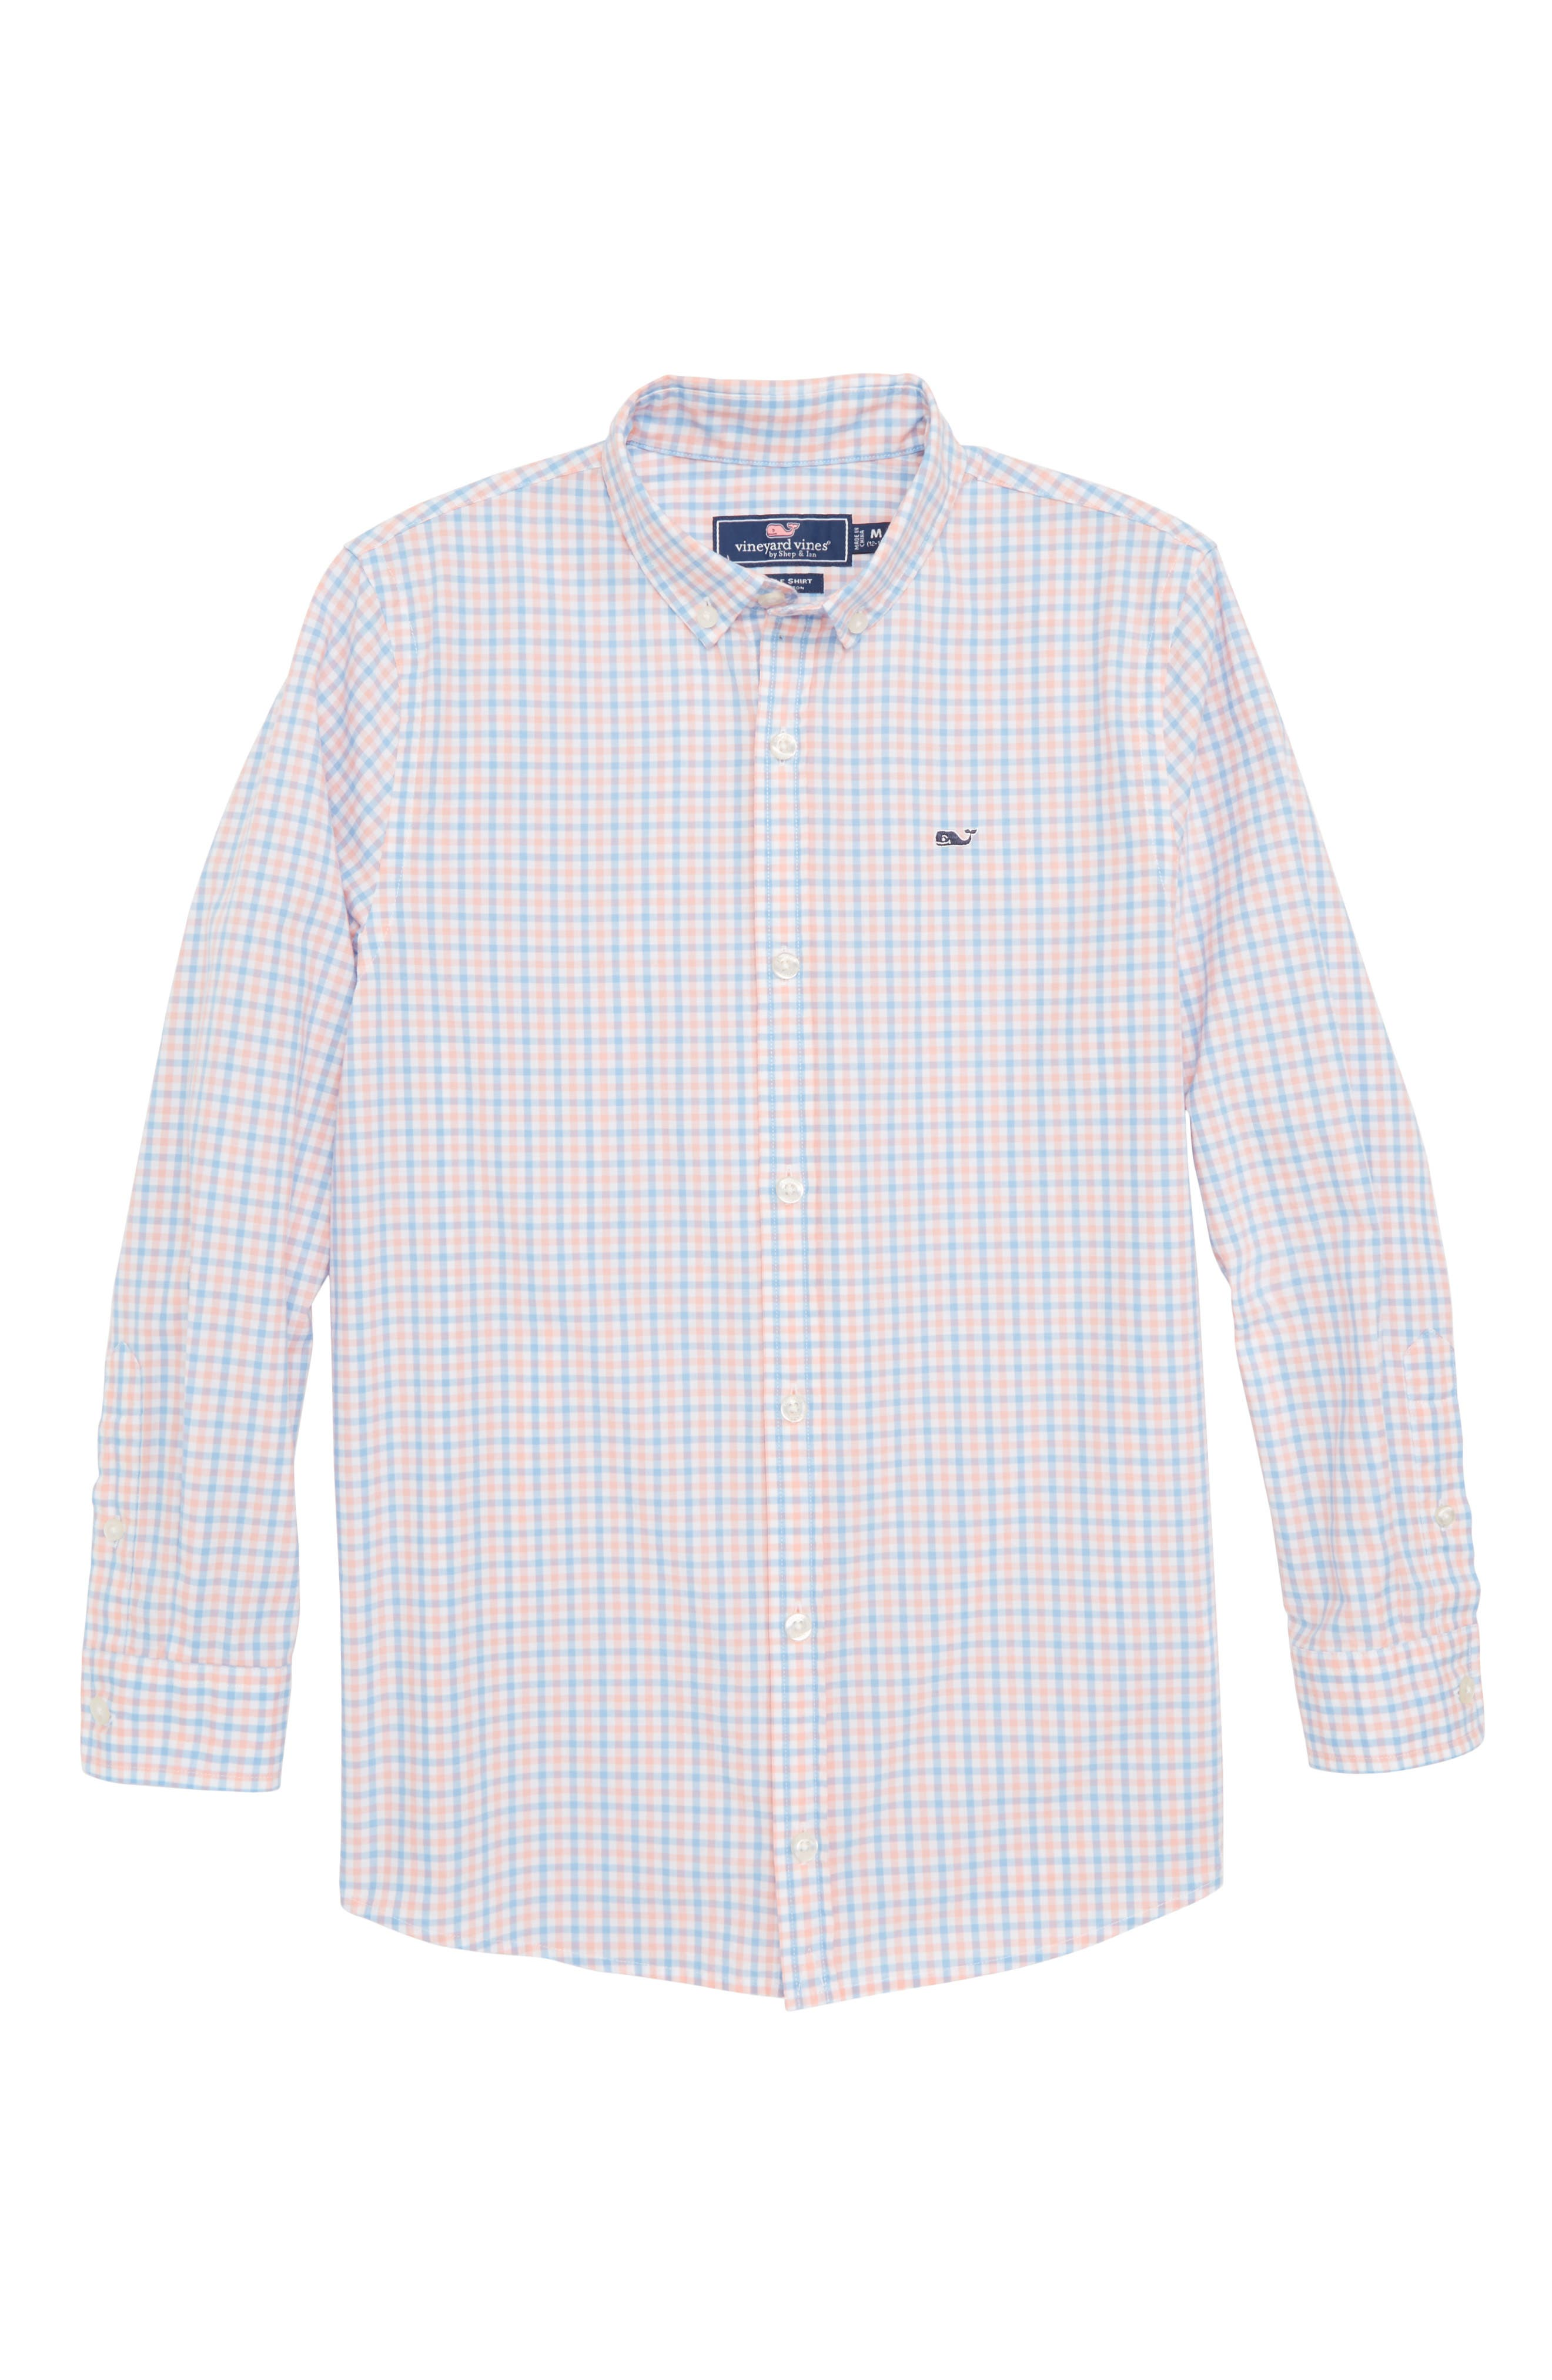 Winding Bay Gingham Woven Shirt,                             Main thumbnail 1, color,                             Bright Peach